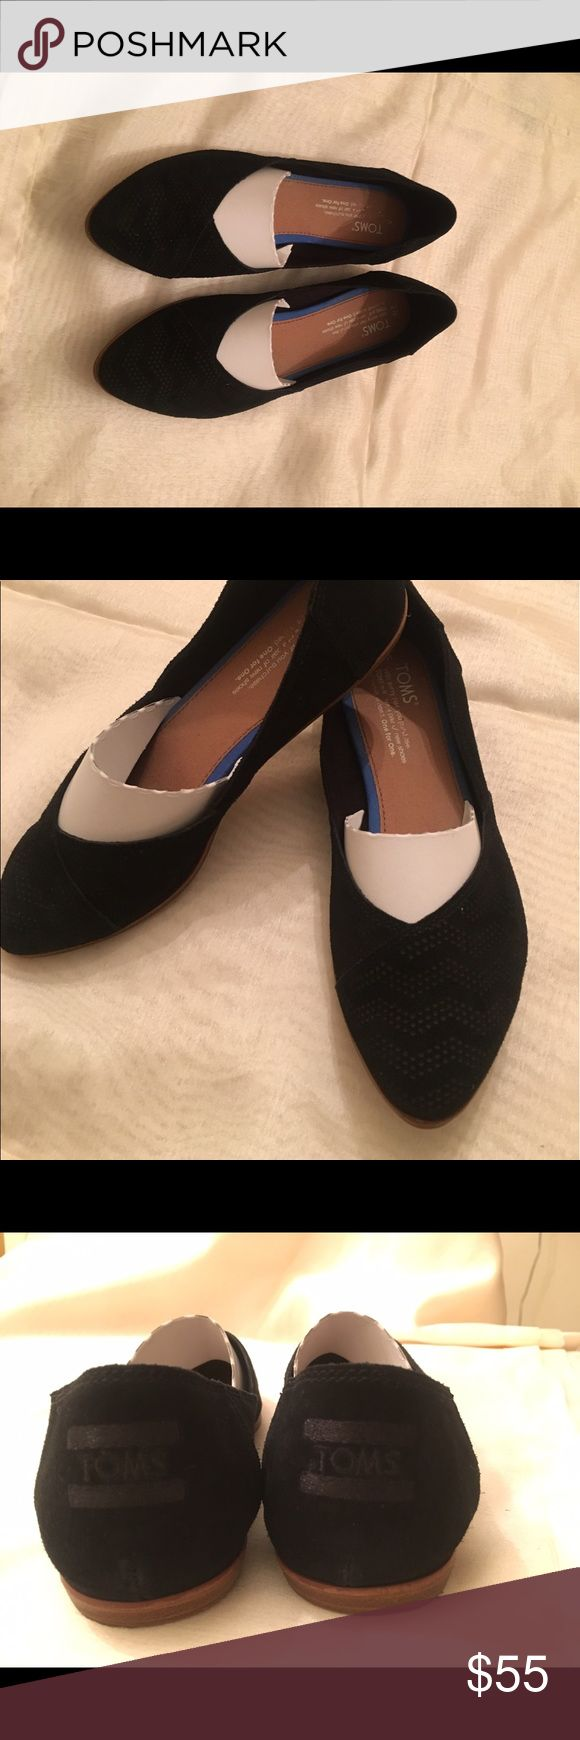 "Black Toms flats Black chevron embossed suede women's ""Jutti"" flats. Original price $84 purchased from Nordstrom only worn a hand full of times. Asking $55 since they are like new. Size 7 TOMS Shoes Flats & Loafers"